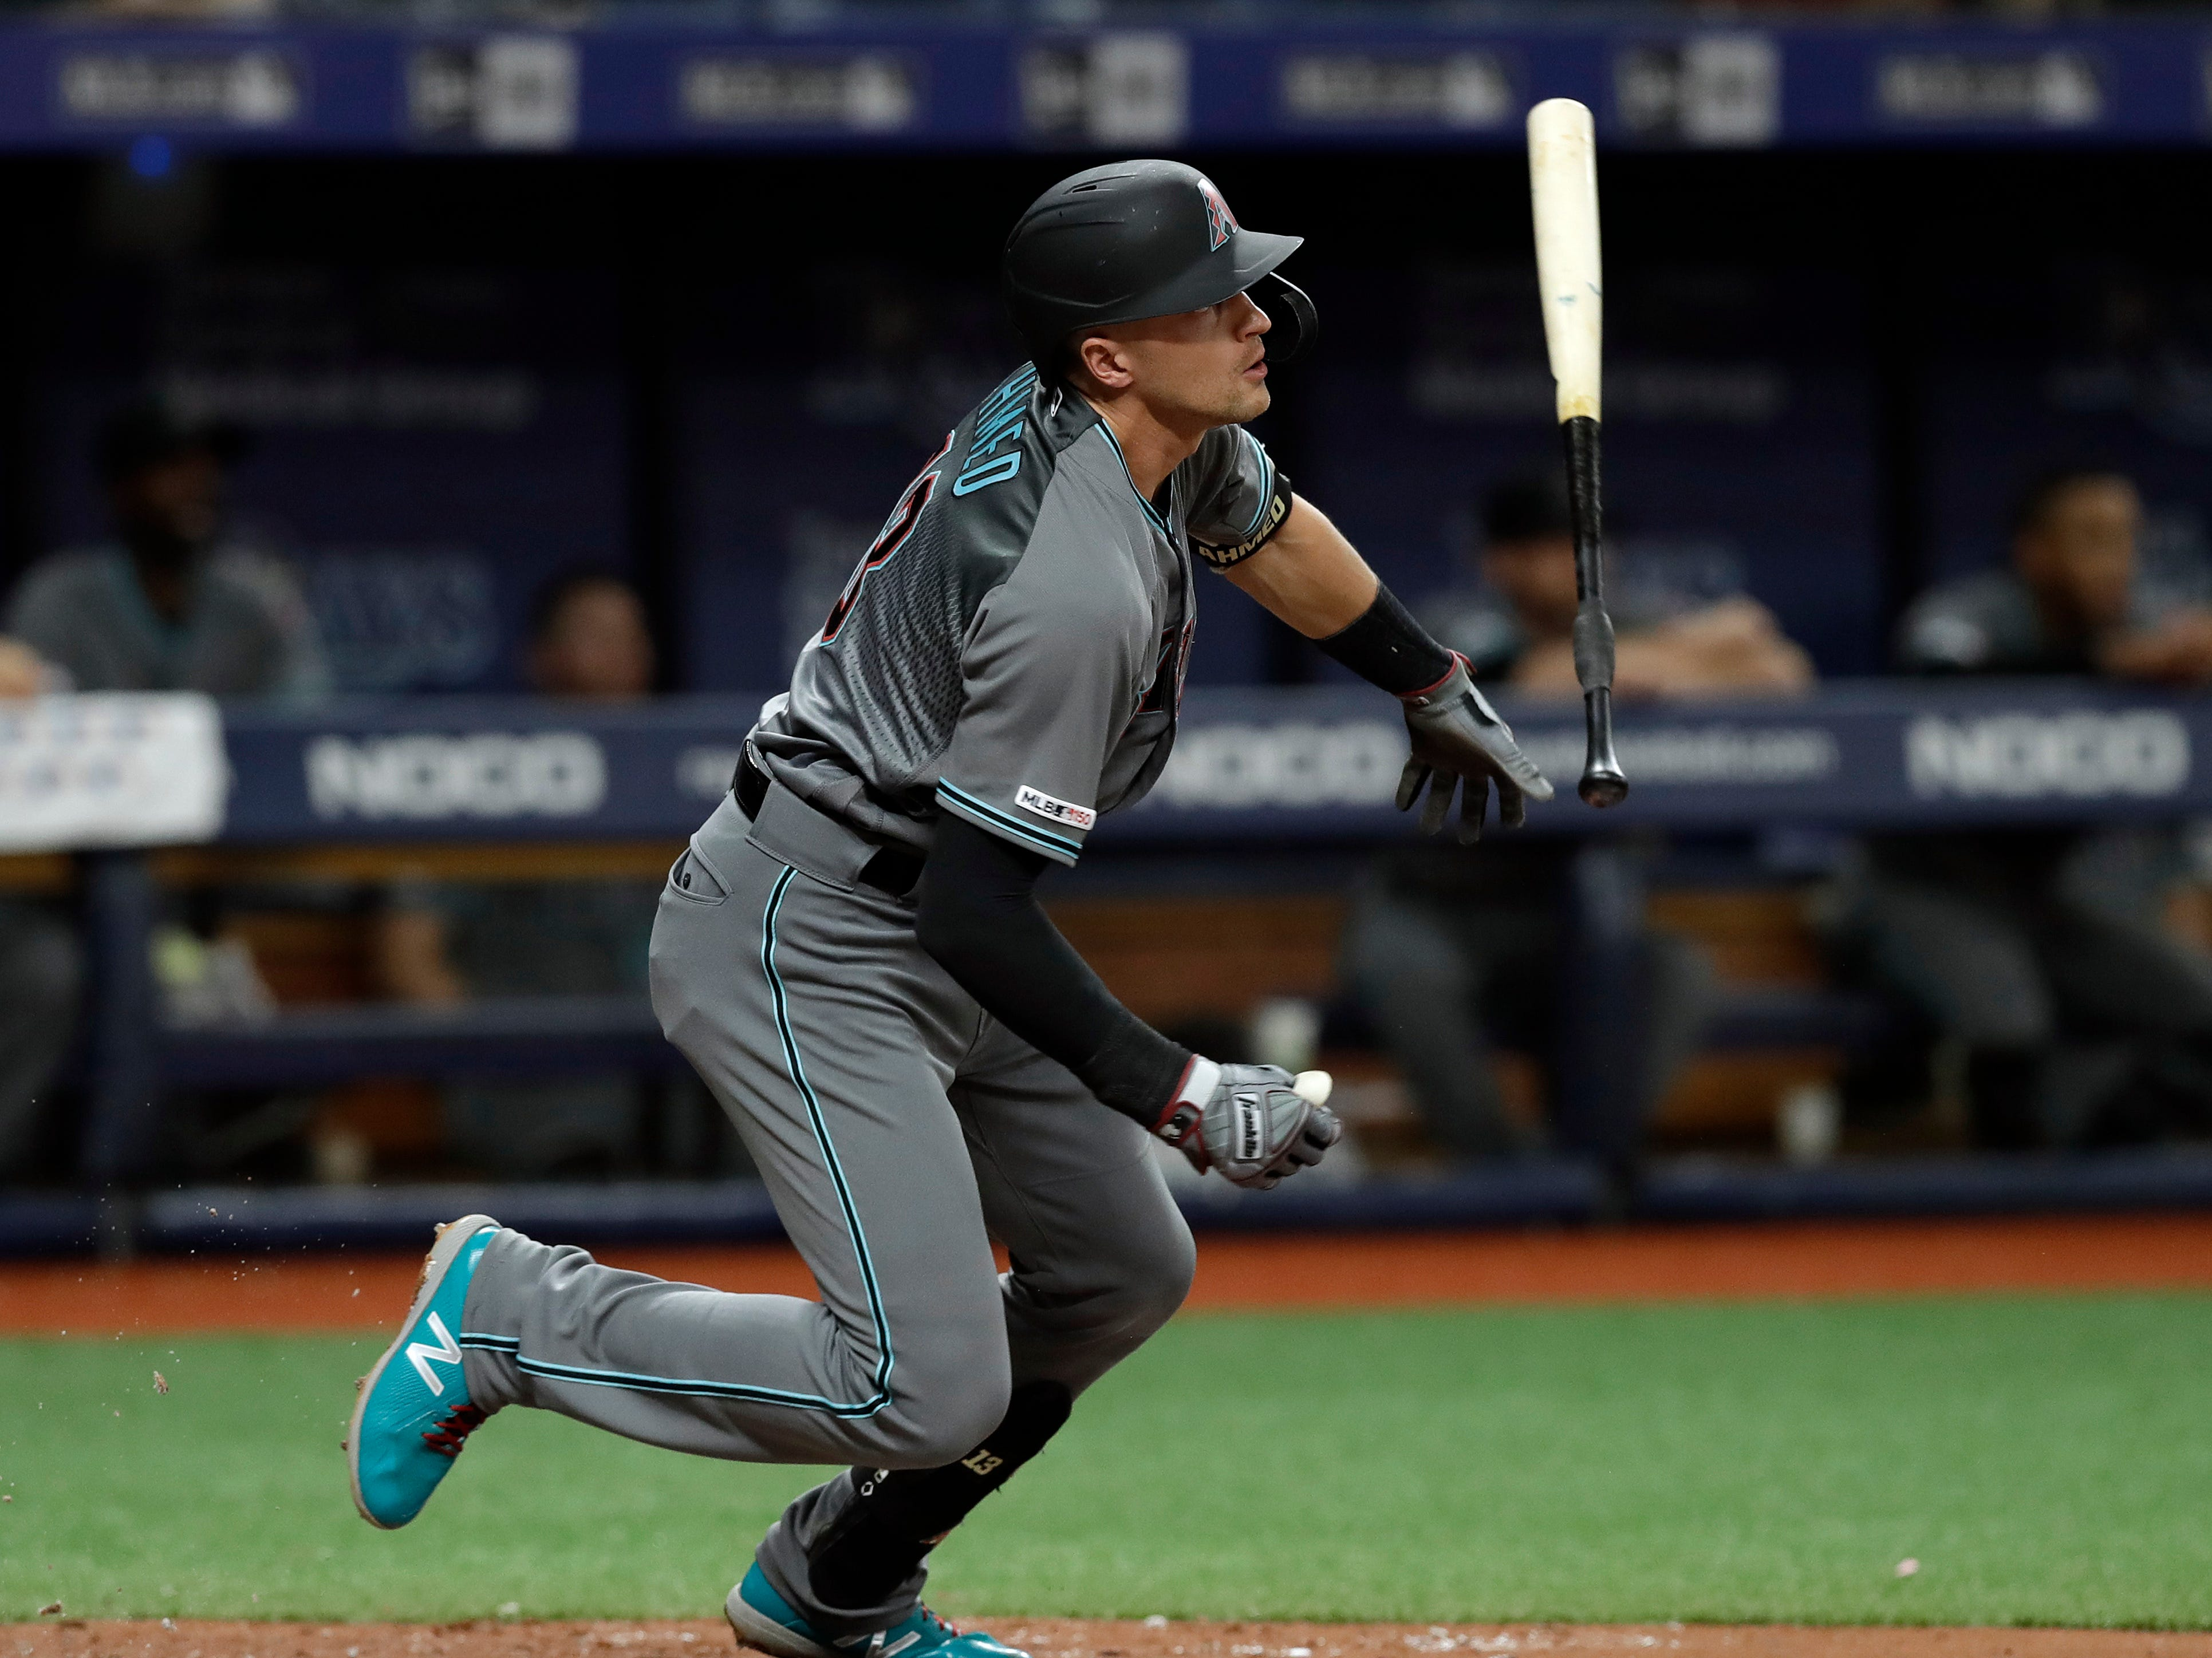 Arizona Diamondbacks' Nick Ahmed flips his bat after his RBI-double off Tampa Bay Rays relief pitcher Jalen Beeks during the fourth inning of a baseball game, Tuesday, May 7, 2019, in St. Petersburg, Fla. Arizona's Adam Jones scored. (AP Photo/Chris O'Meara)